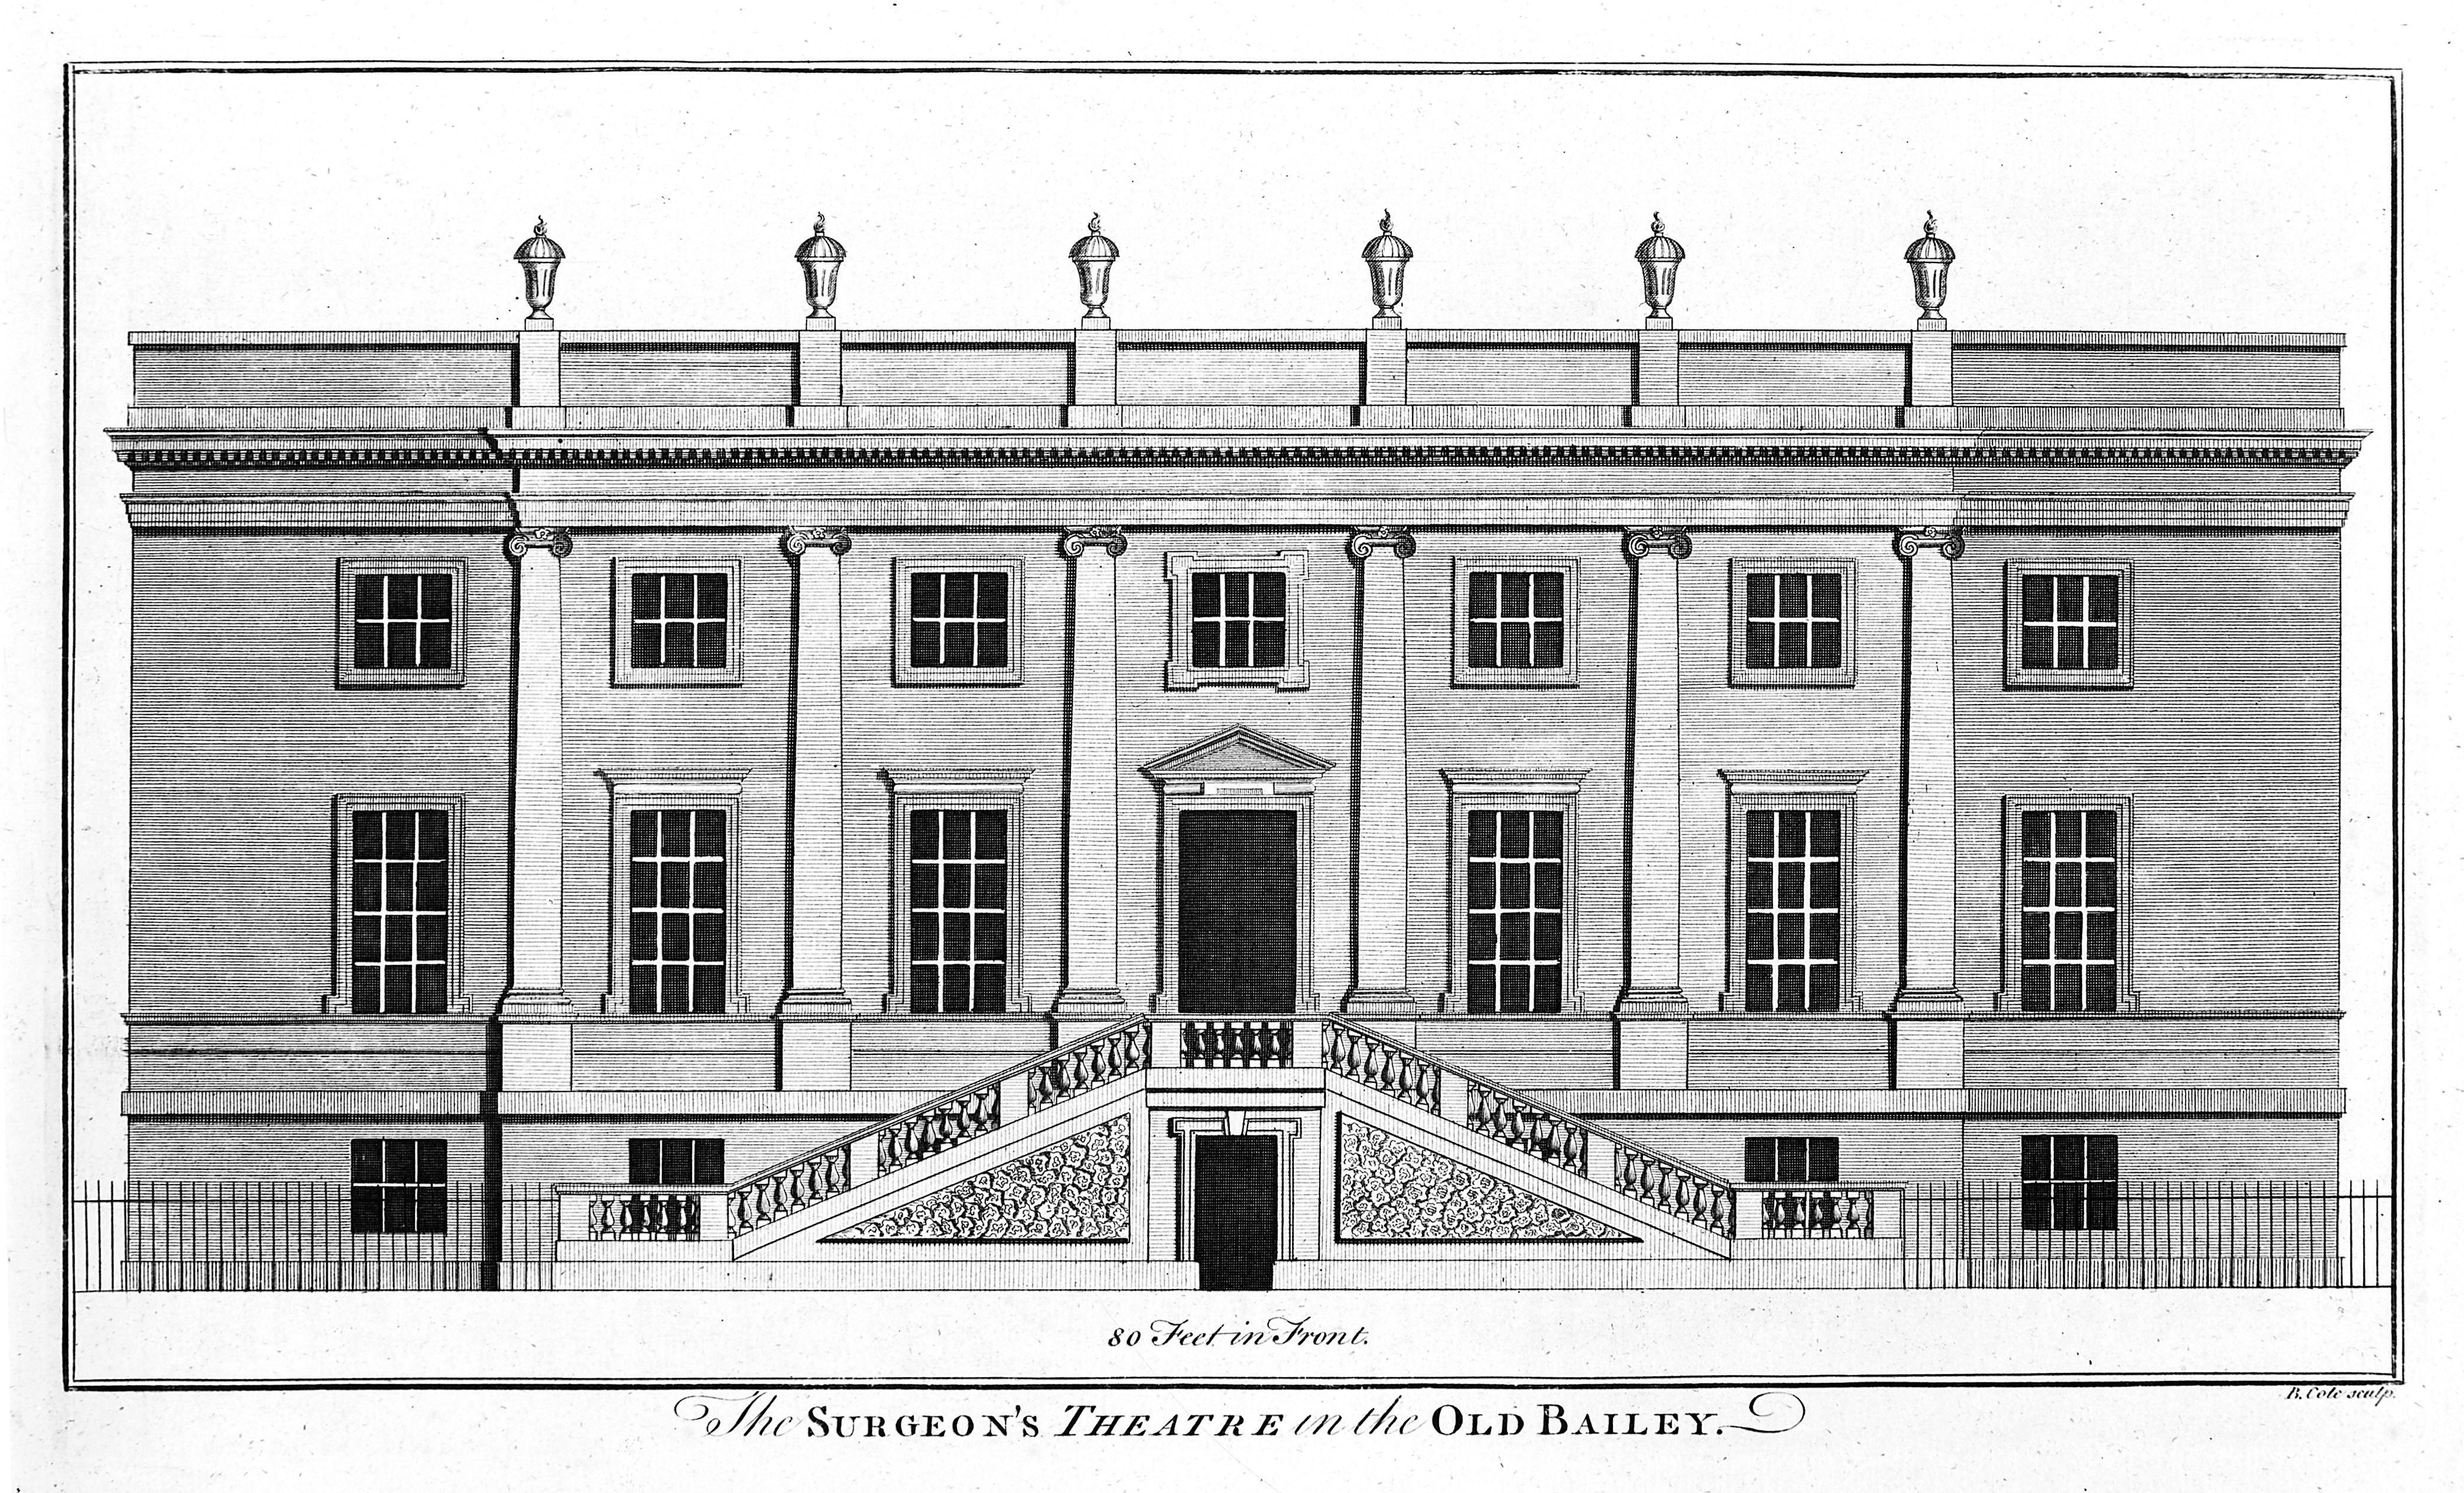 File:Surgeons' Hall, Old Bailey, London, the facade. Engraving by